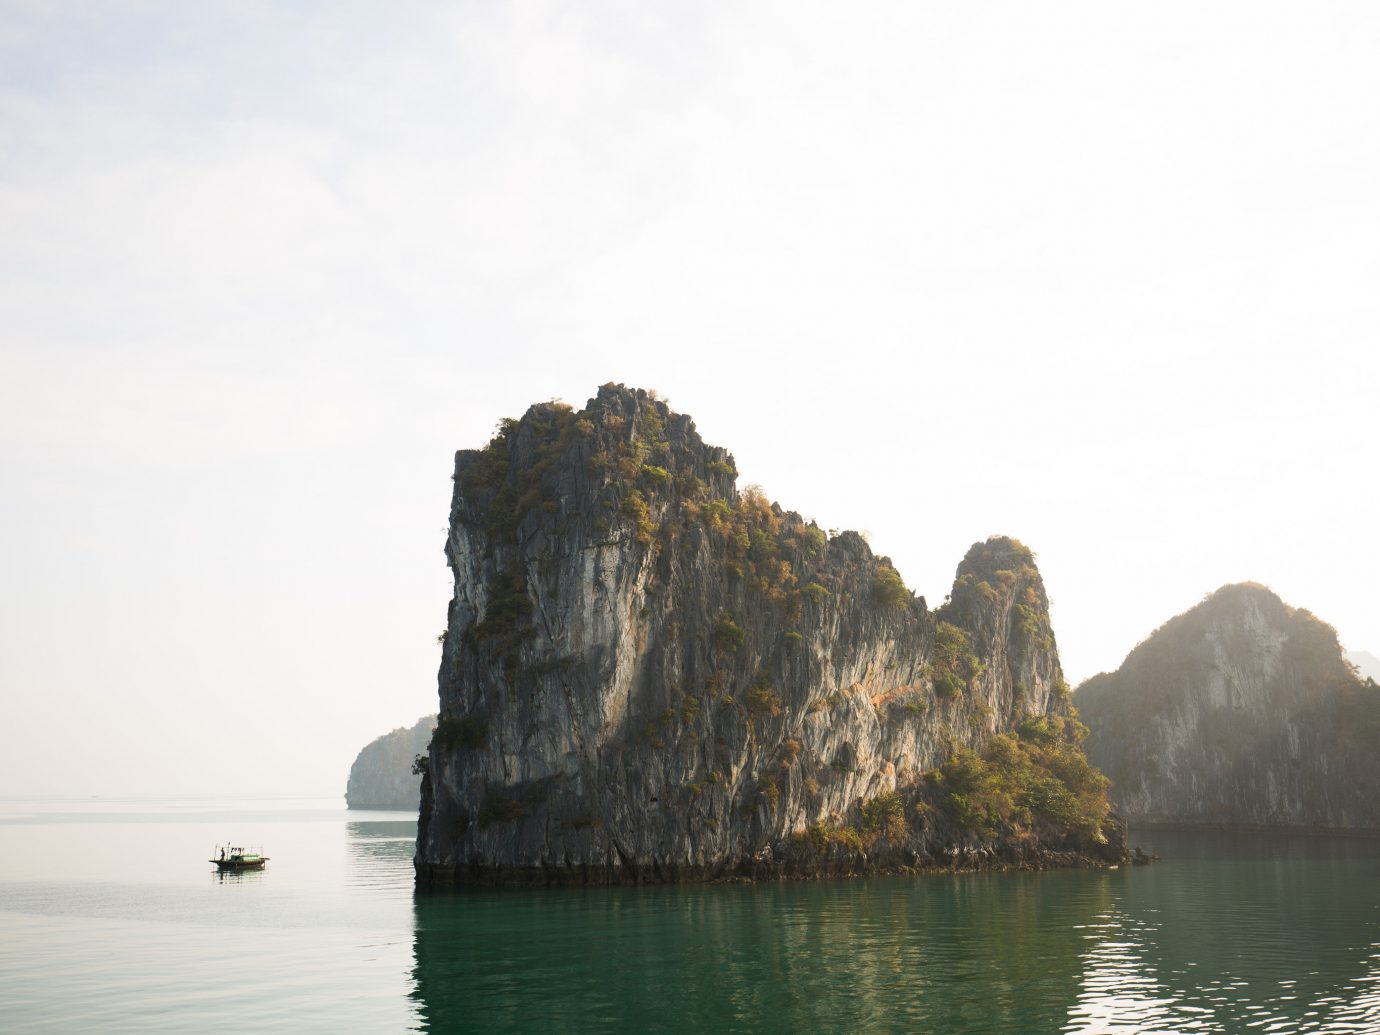 Offbeat water outdoor Boat landform Lake geographical feature Coast Sea body of water cliff rock Nature bay mountain shore Ocean terrain vehicle cape floating islet surrounded distance Island day